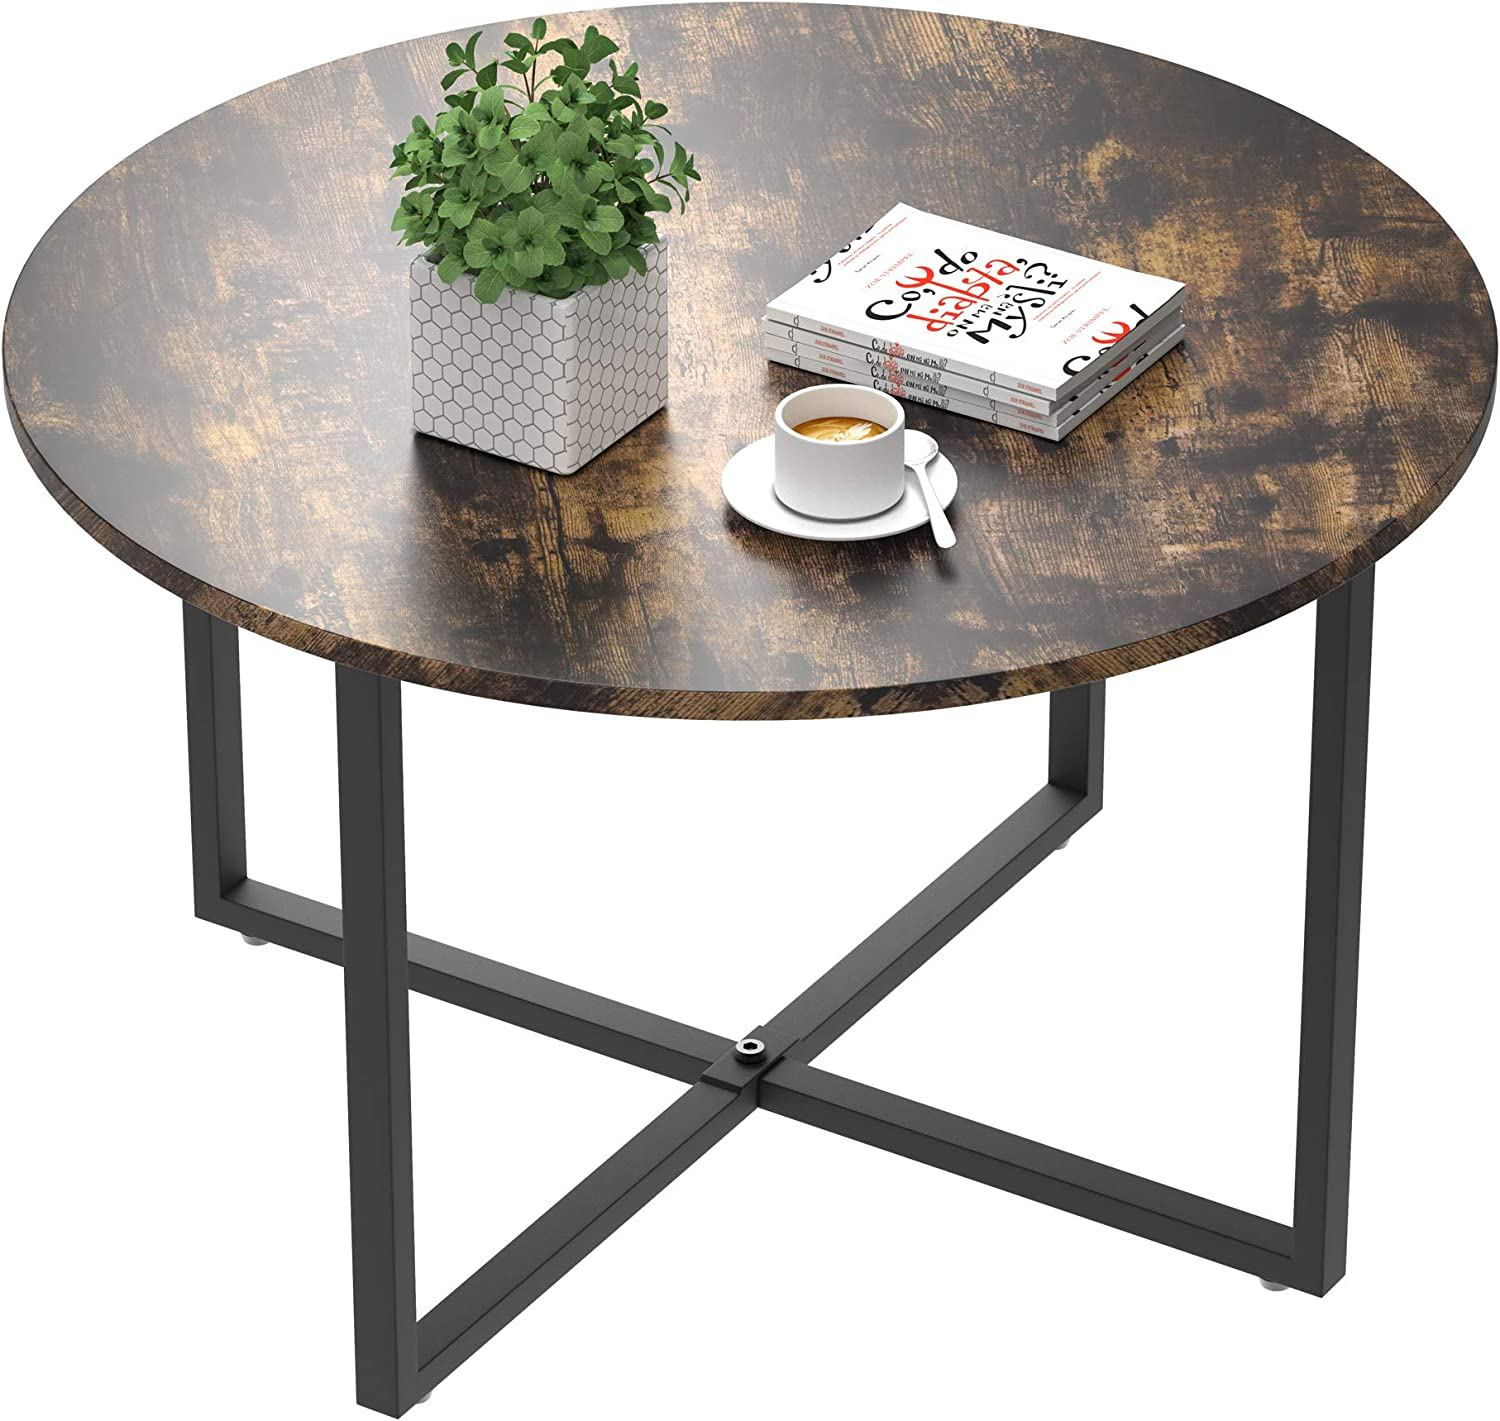 IDEALHOUSE Round Coffee Table, Vintage Design Furniture Sofa Table Cocktail Table for Living Room Bedroom Home Office Balcony (80cm, Retro Color)